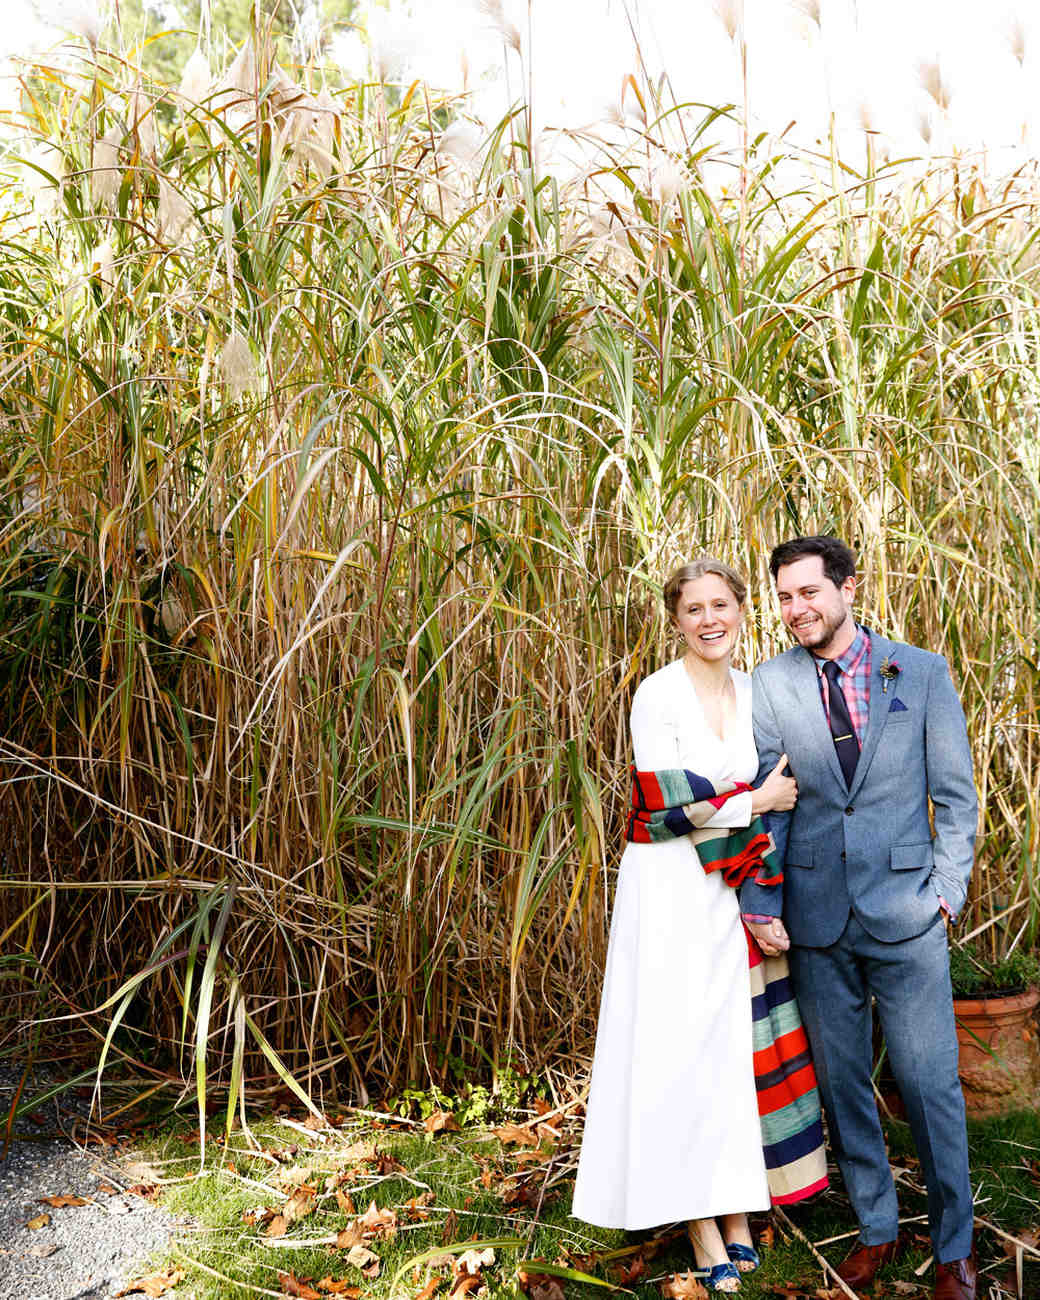 tory jonathan wedding couple in field